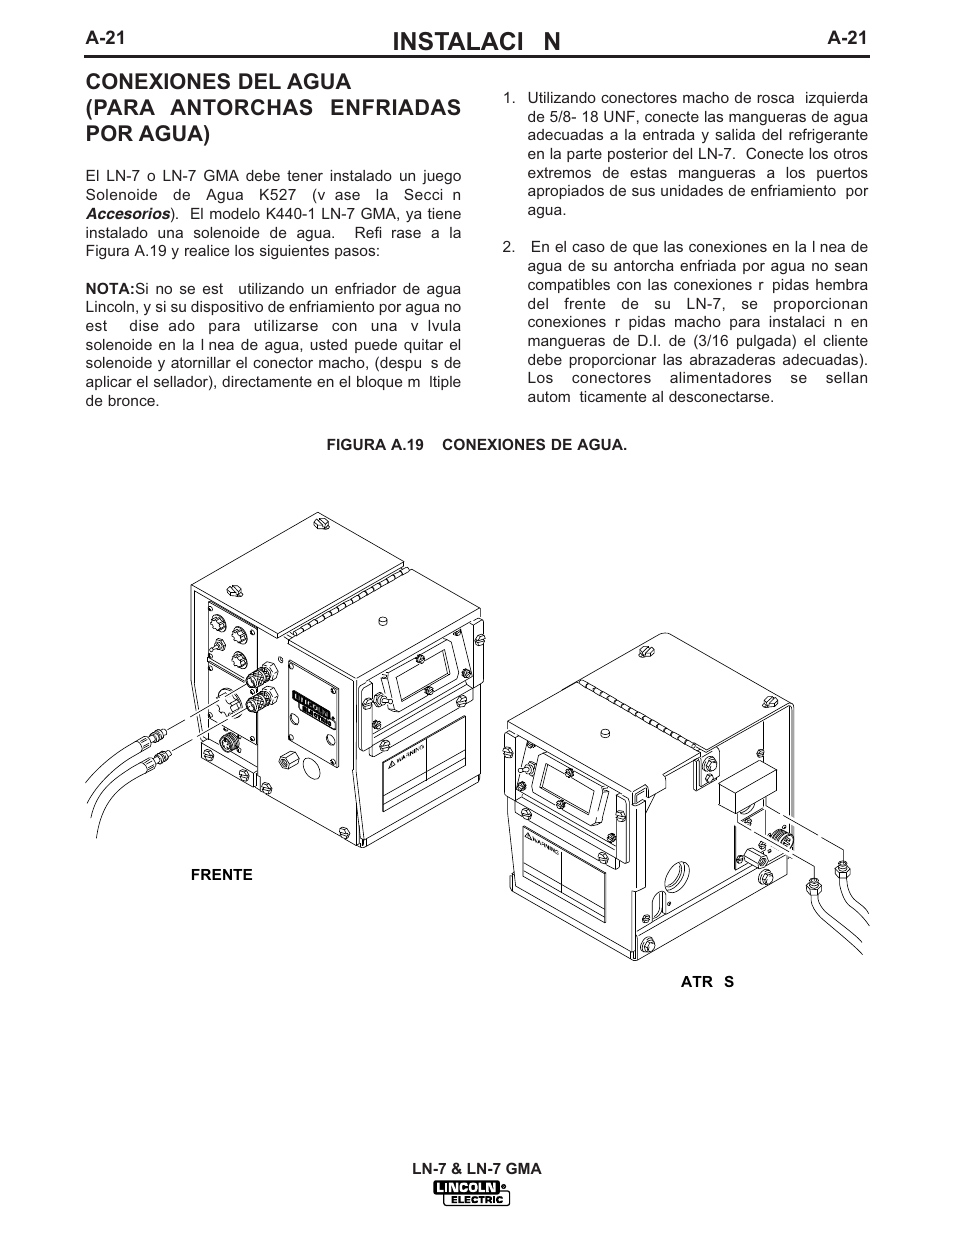 medium resolution of instalaci n lincoln electric im351 ln 7 gma wire feeder manual del usuario